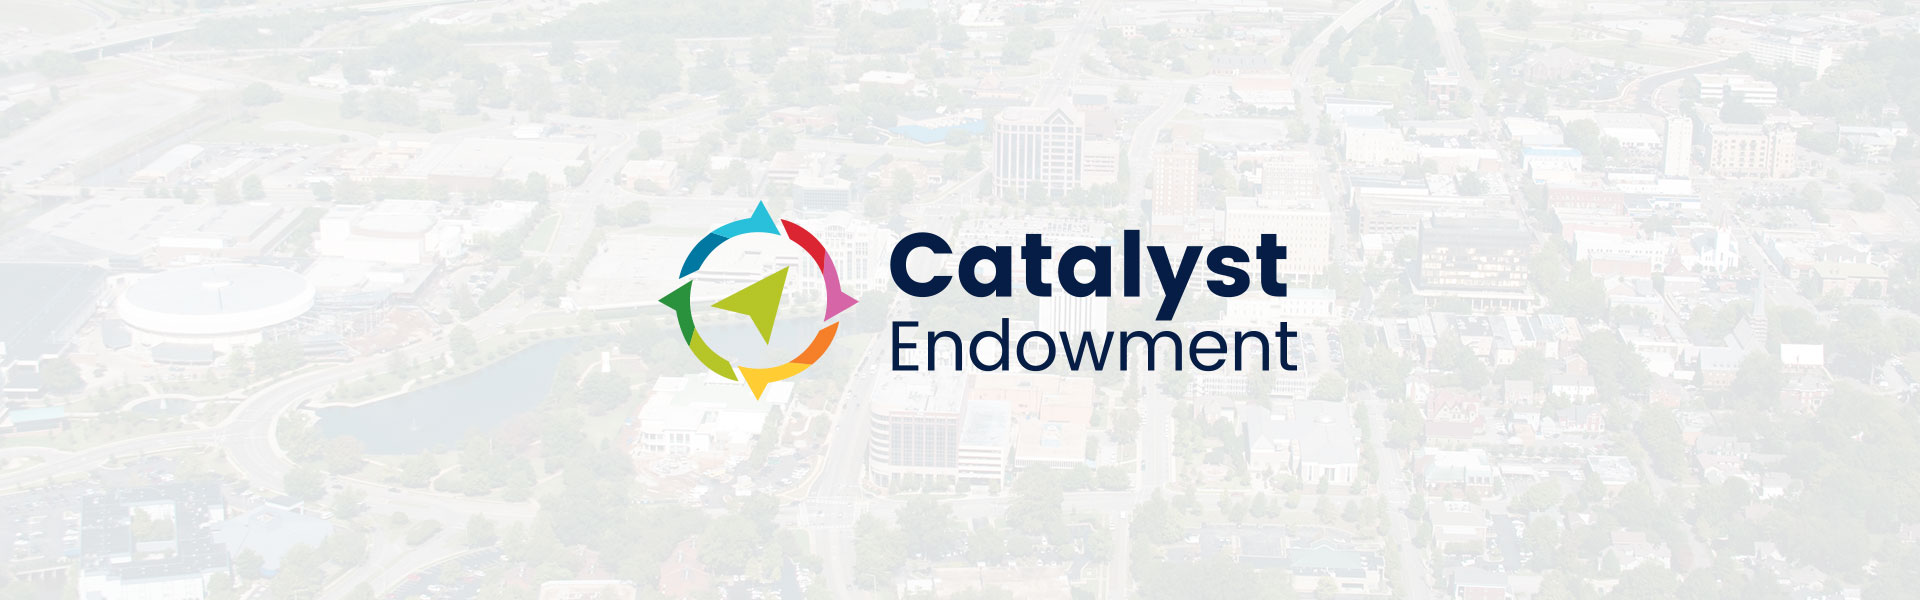 catalyst endowment hdr